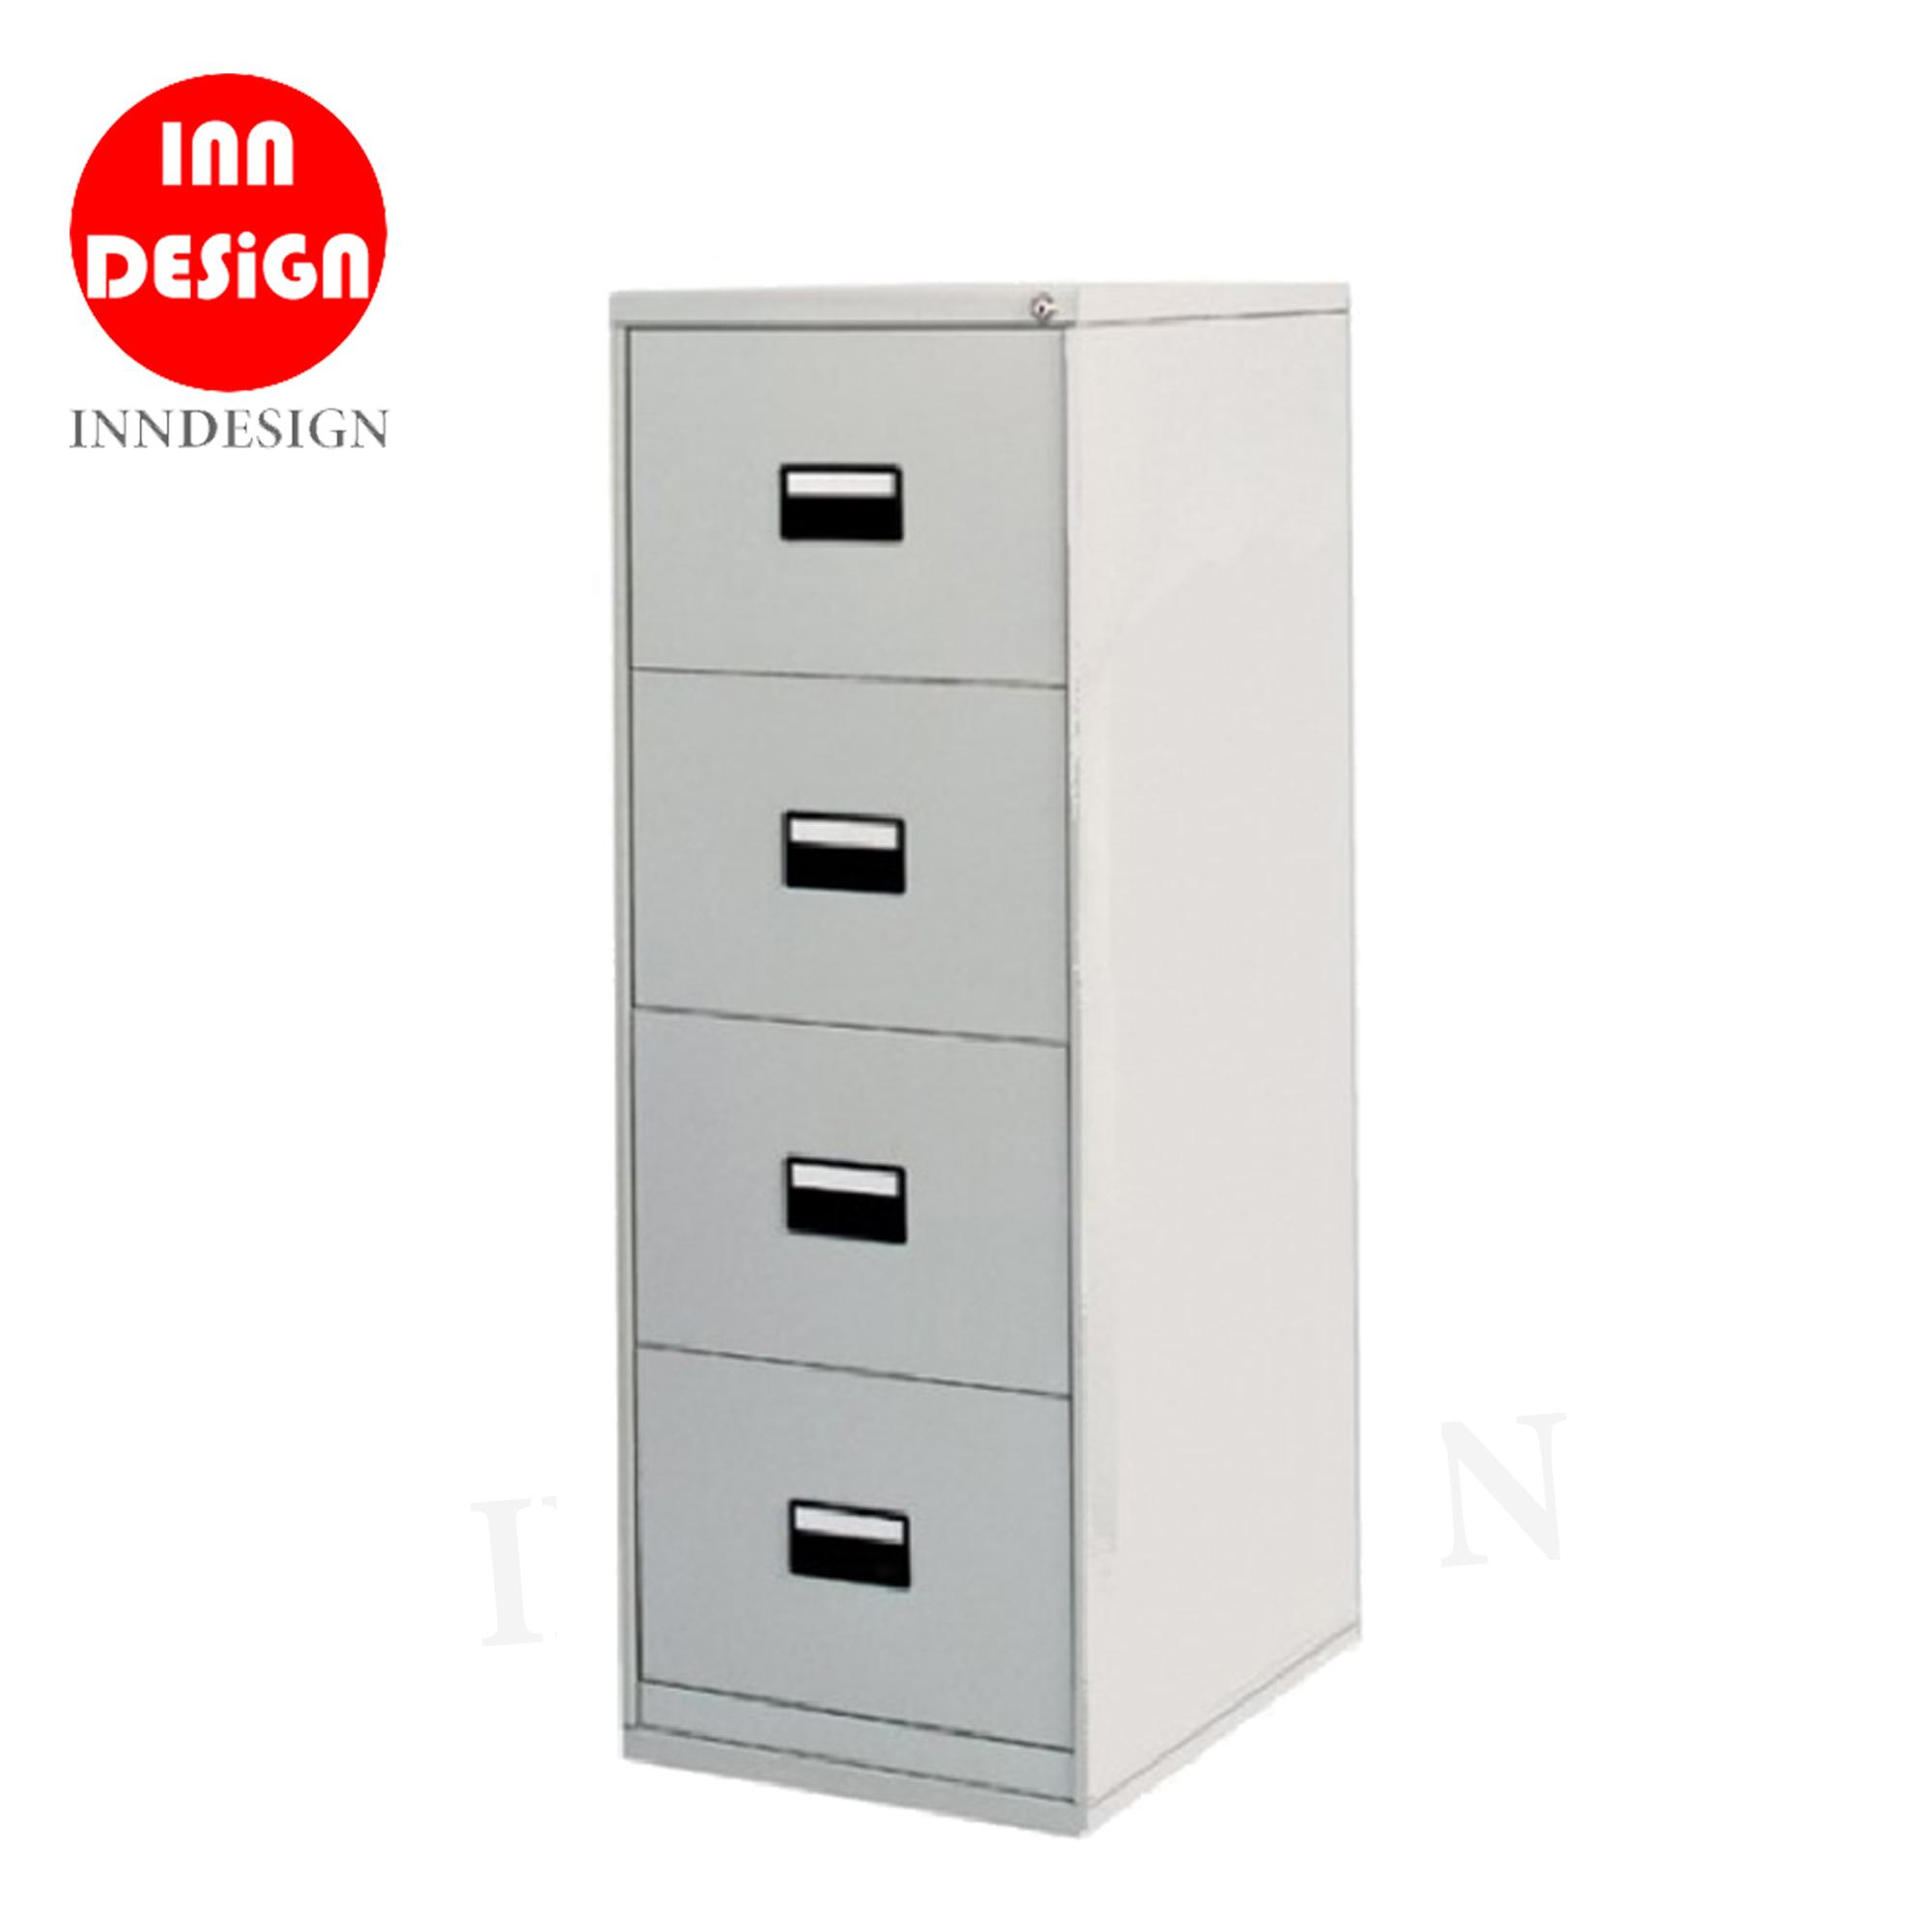 High Steel Filing Cabinet / Cabinet (Free Delivery and Installation)